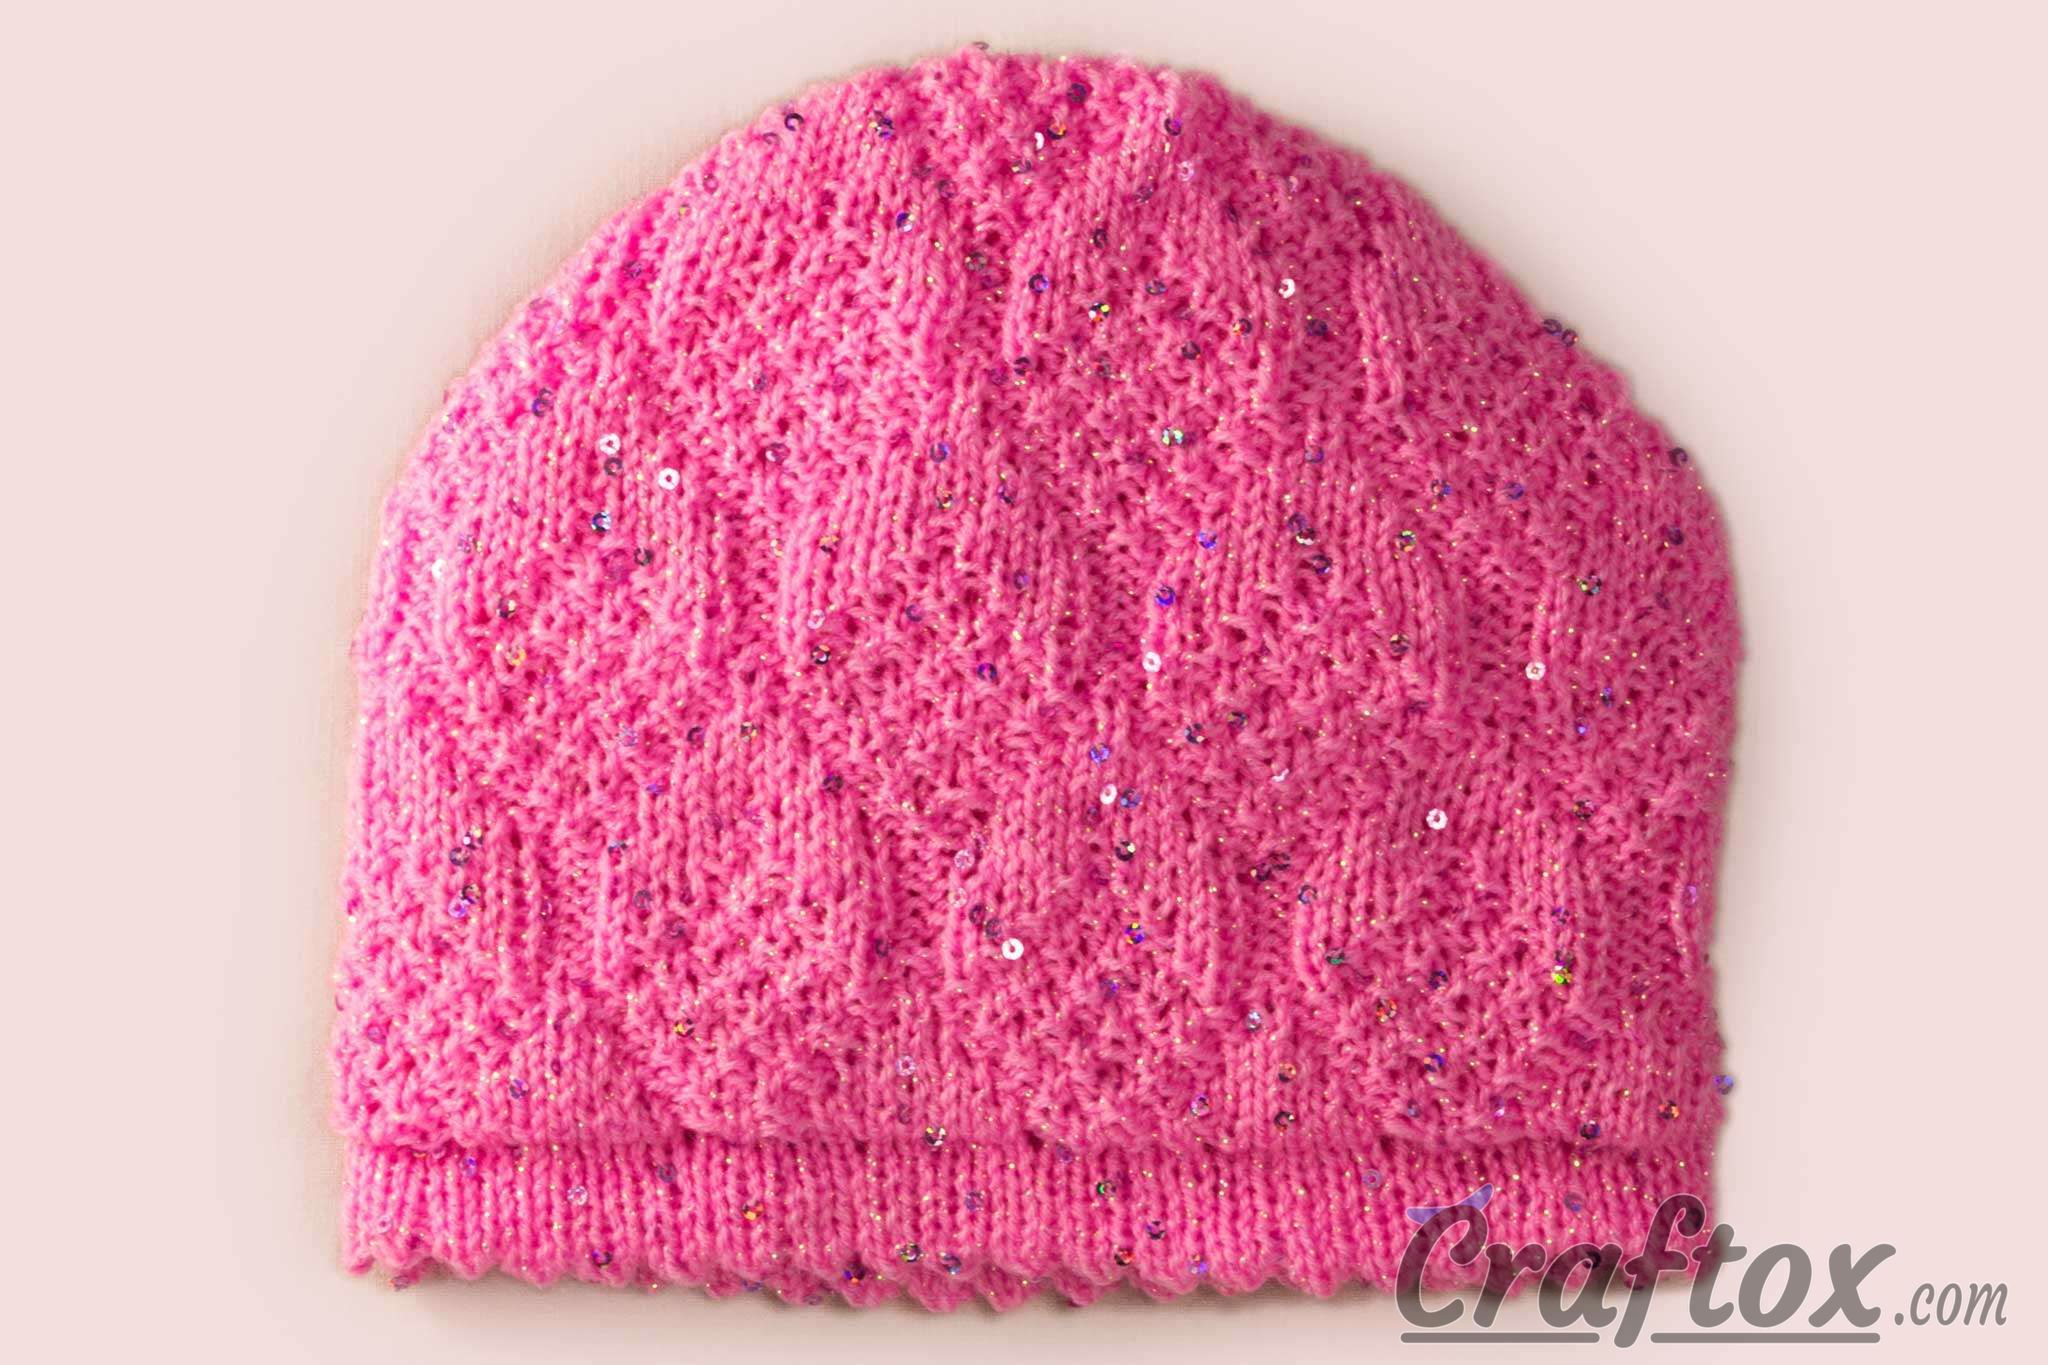 Easy Beanie Knit Pattern : Easy beanie with paillettes for 5-6-year-old girl. Free knitting pattern.